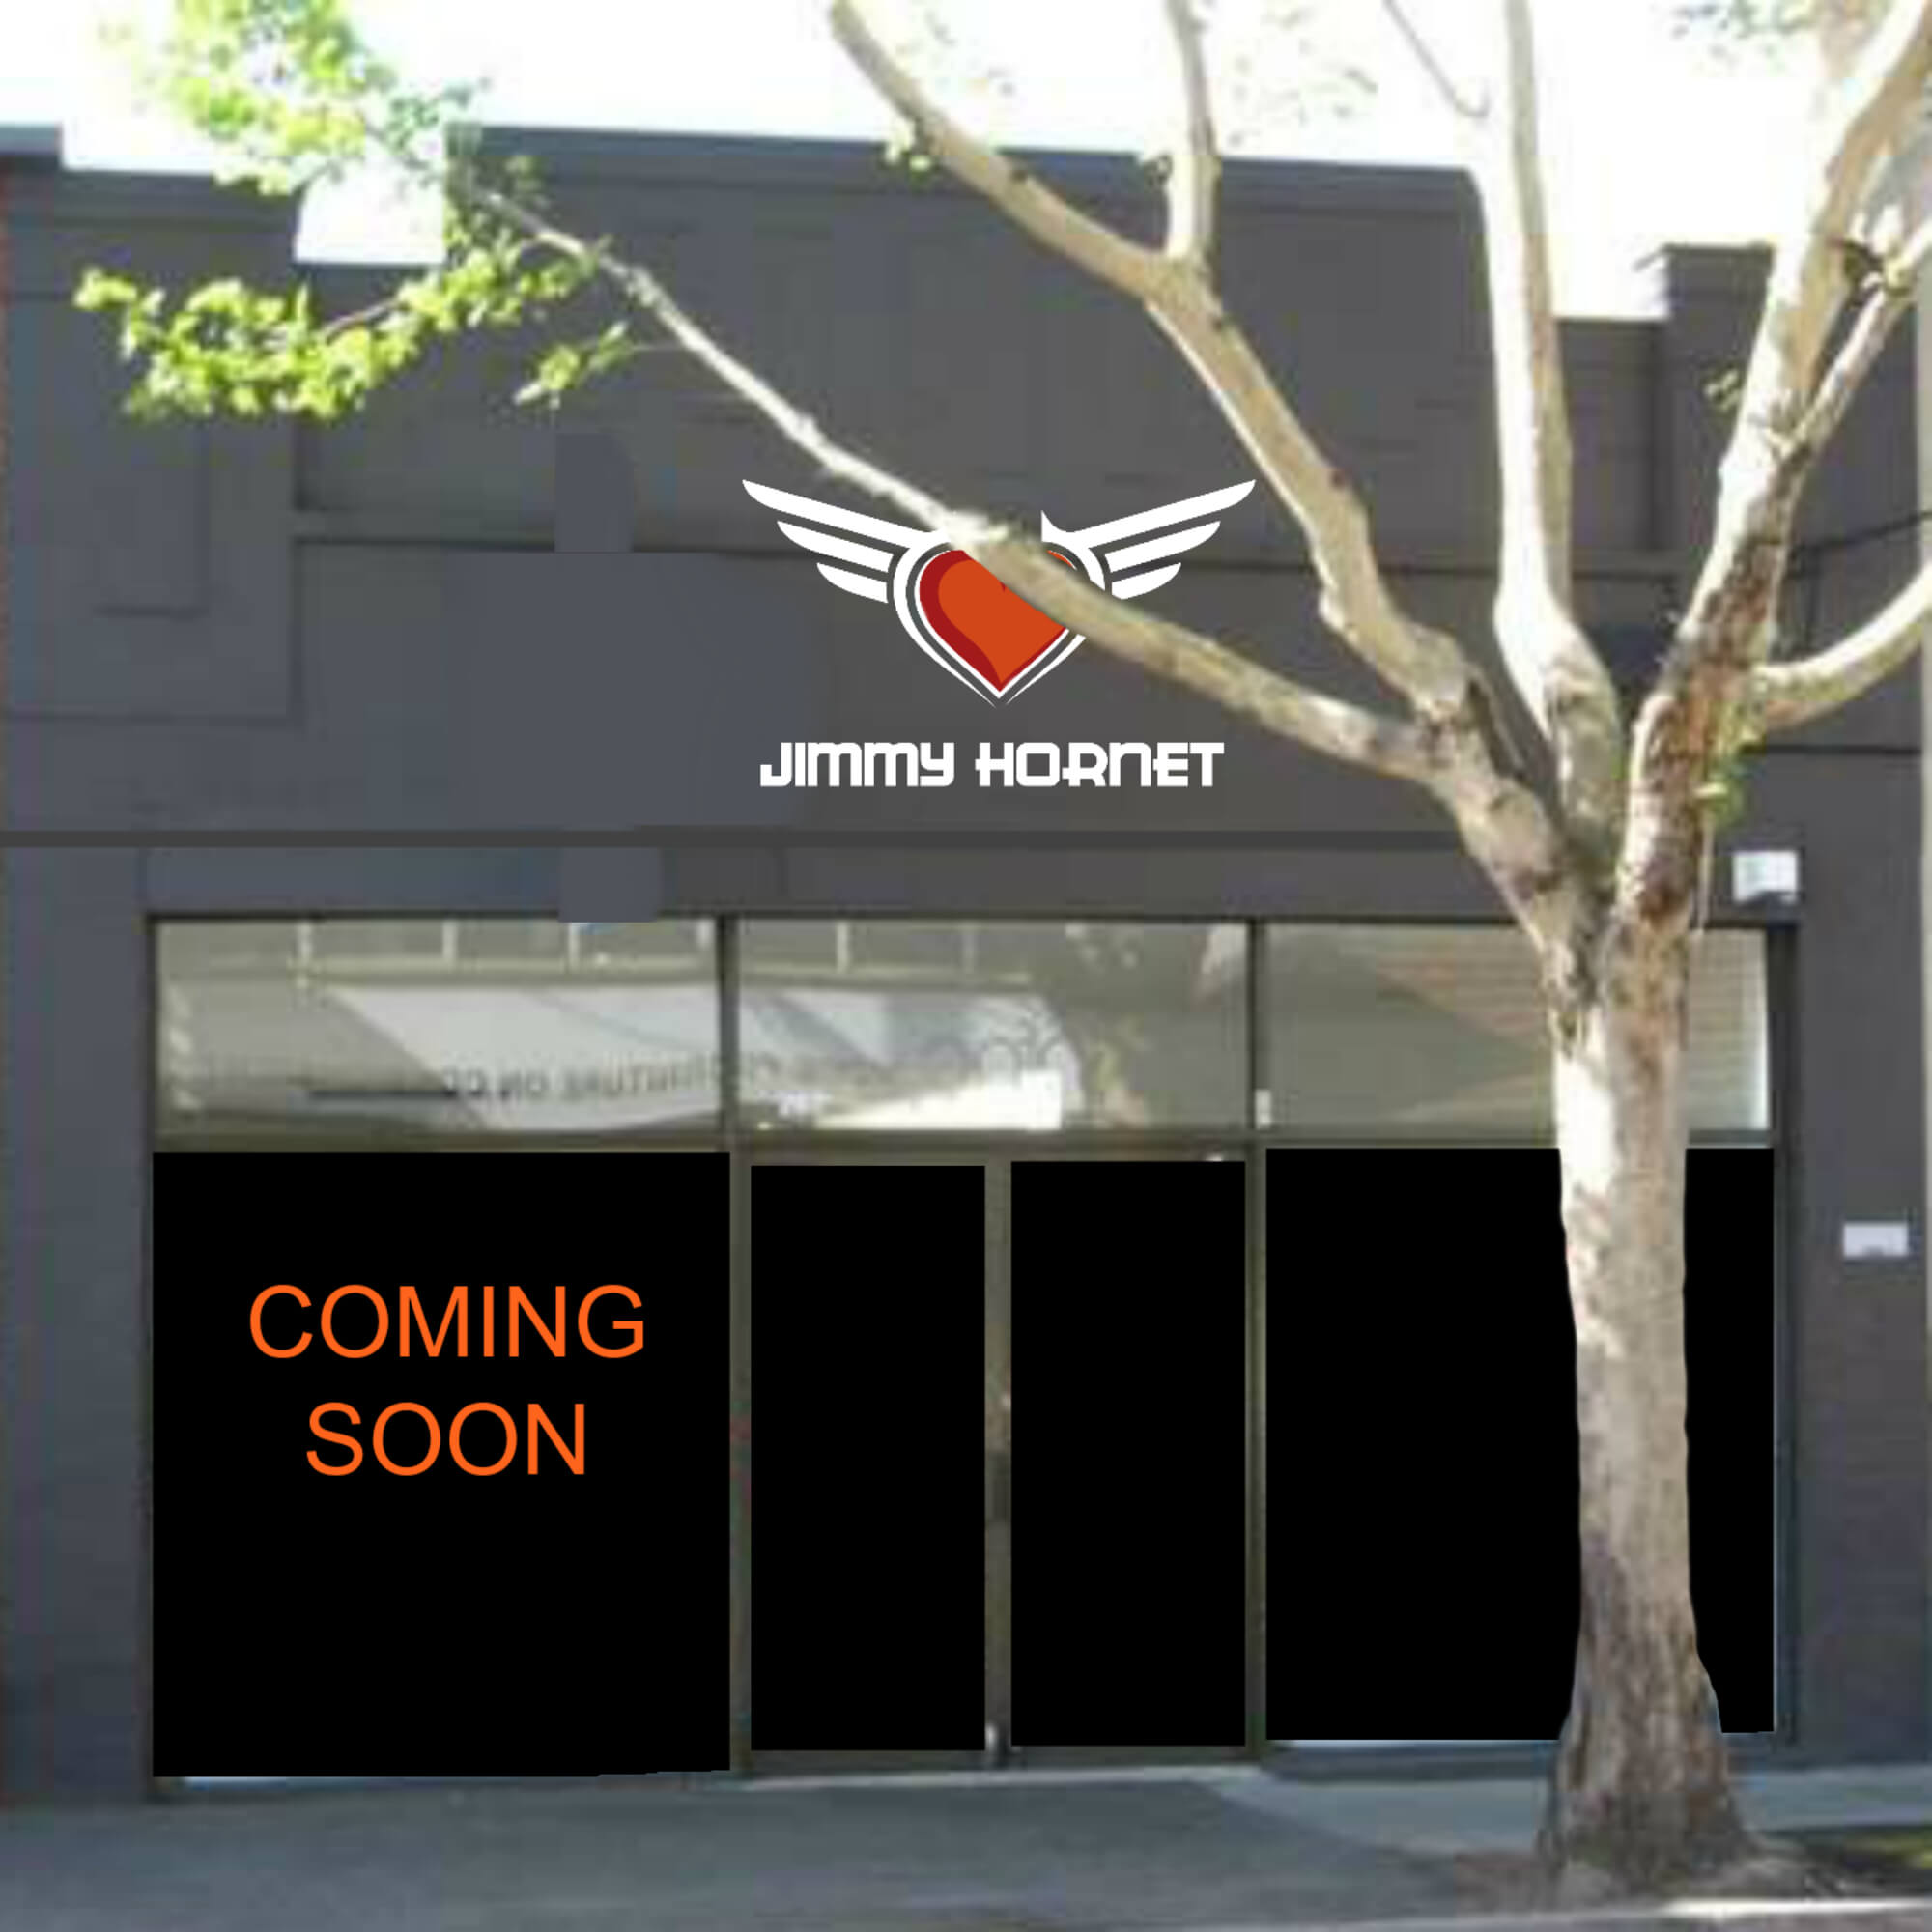 Prospective Building for Jimmy Hornet Melbourne